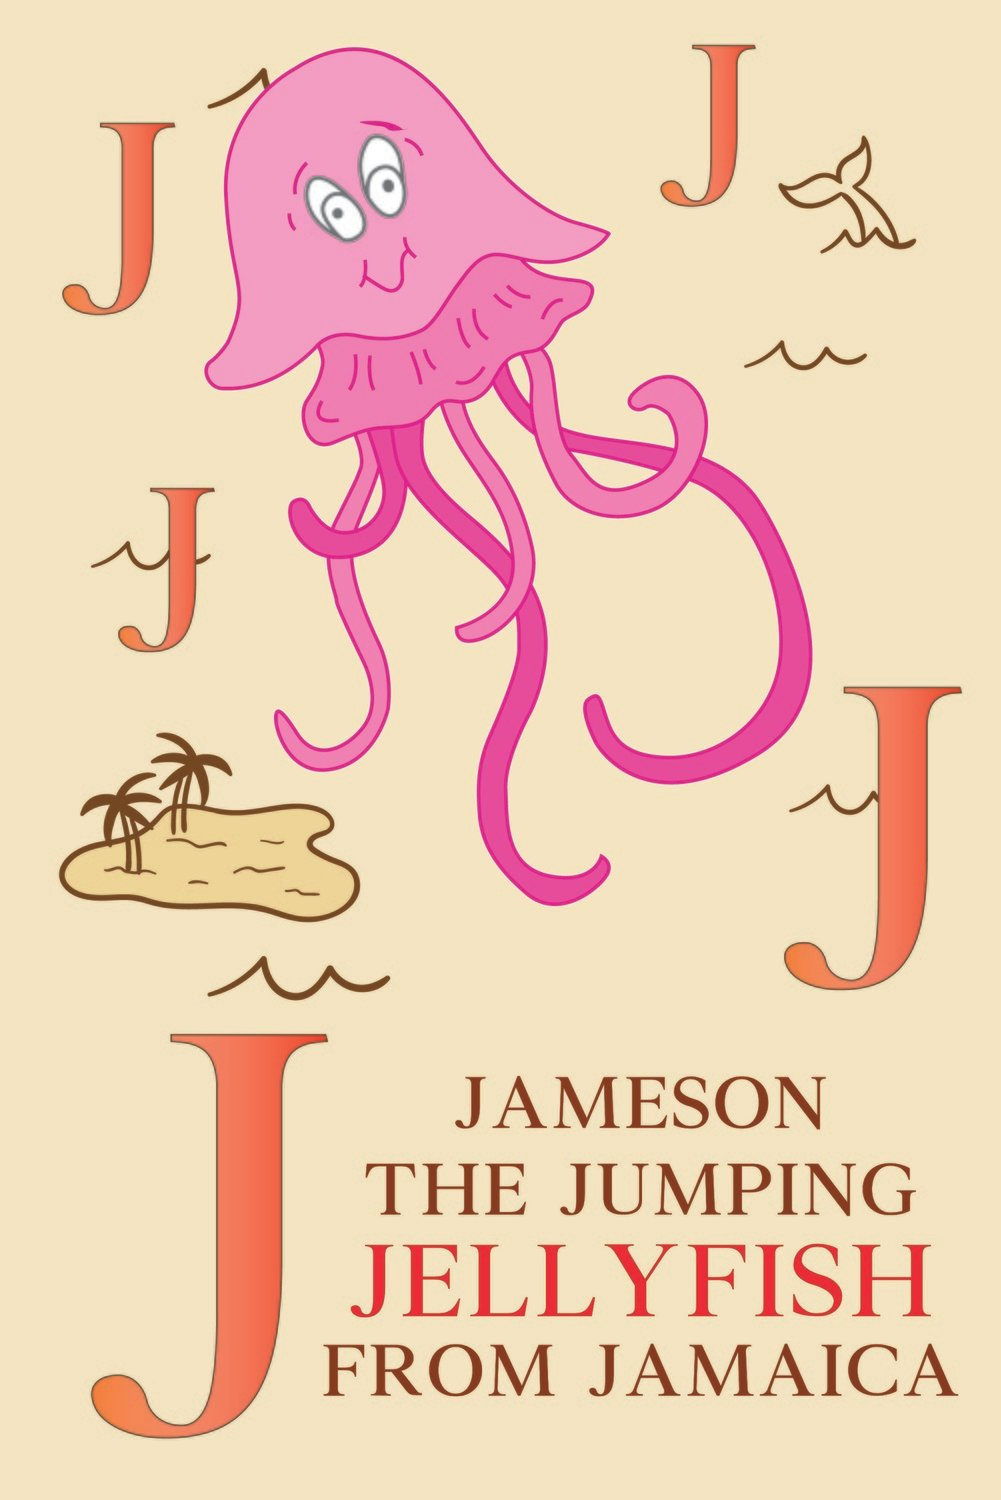 Jameson The Jumping JELLYFISH From JAMAICA Poster